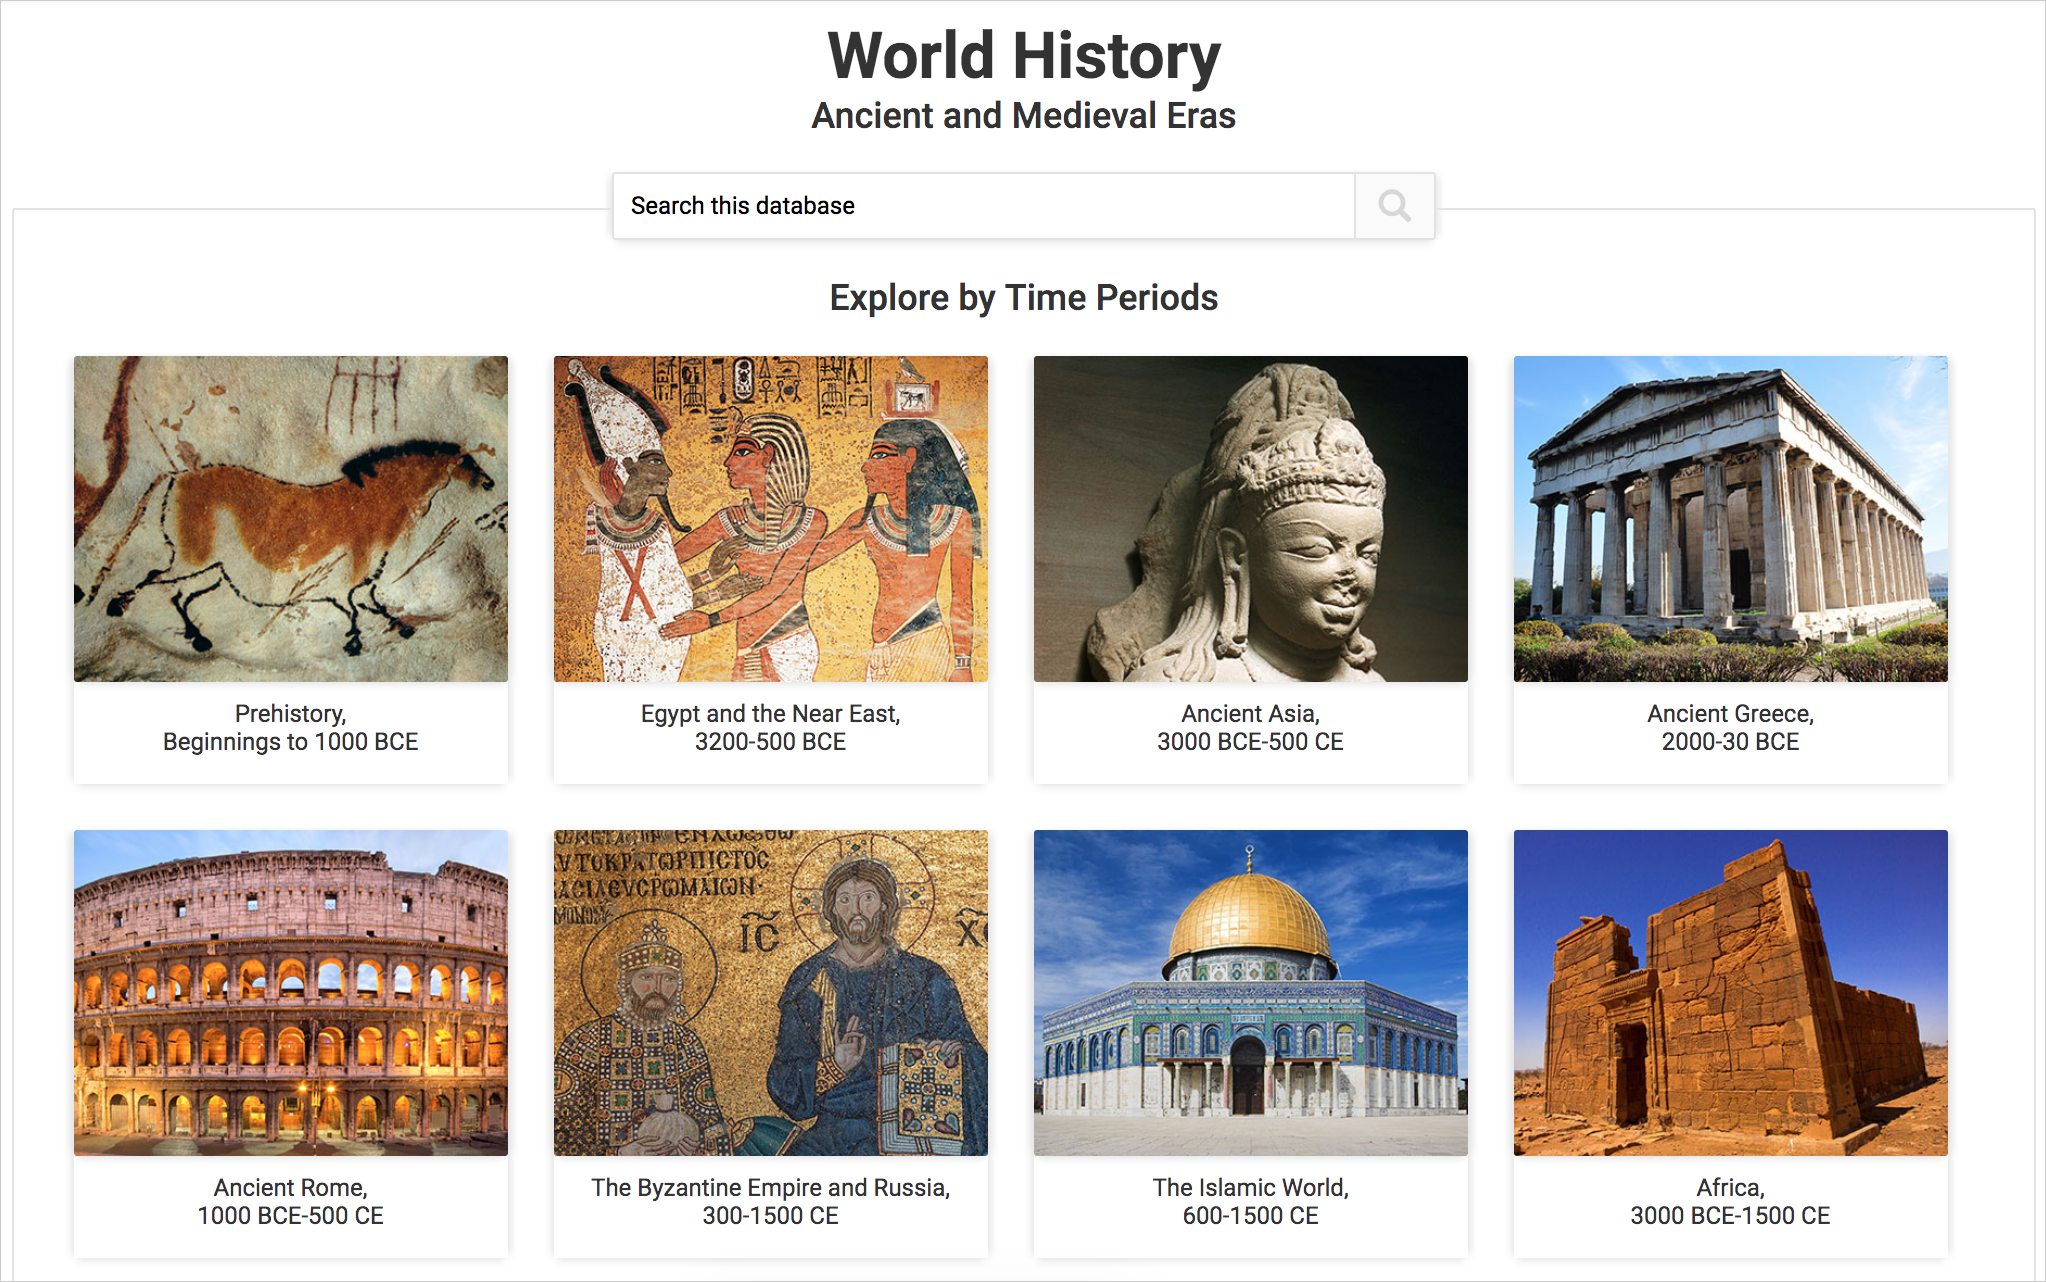 World History Ancient And Me Val Eras